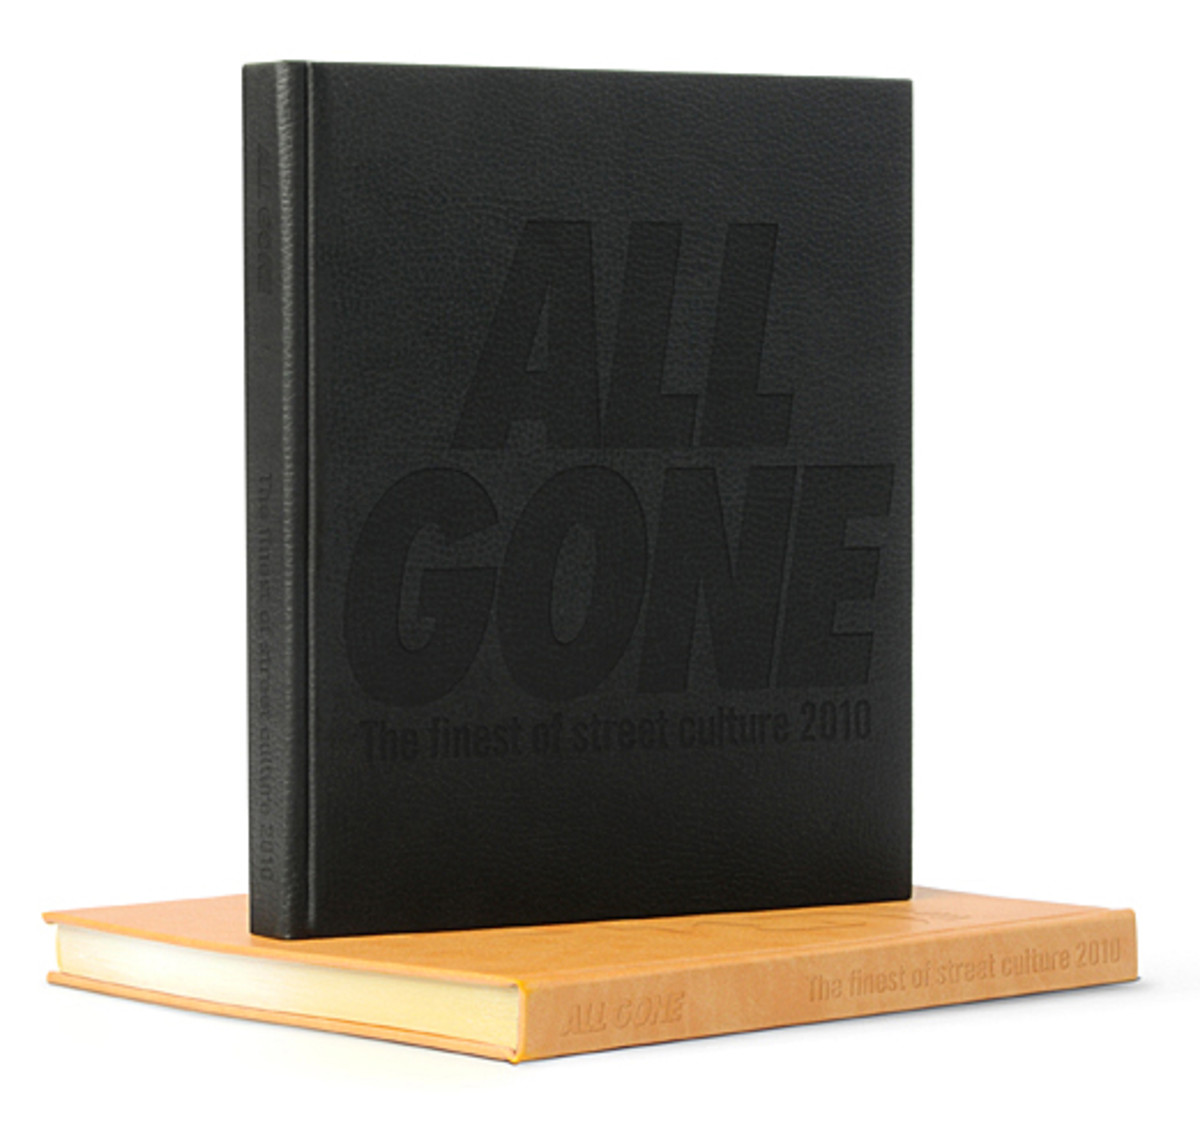 all-gone-2010-book-01